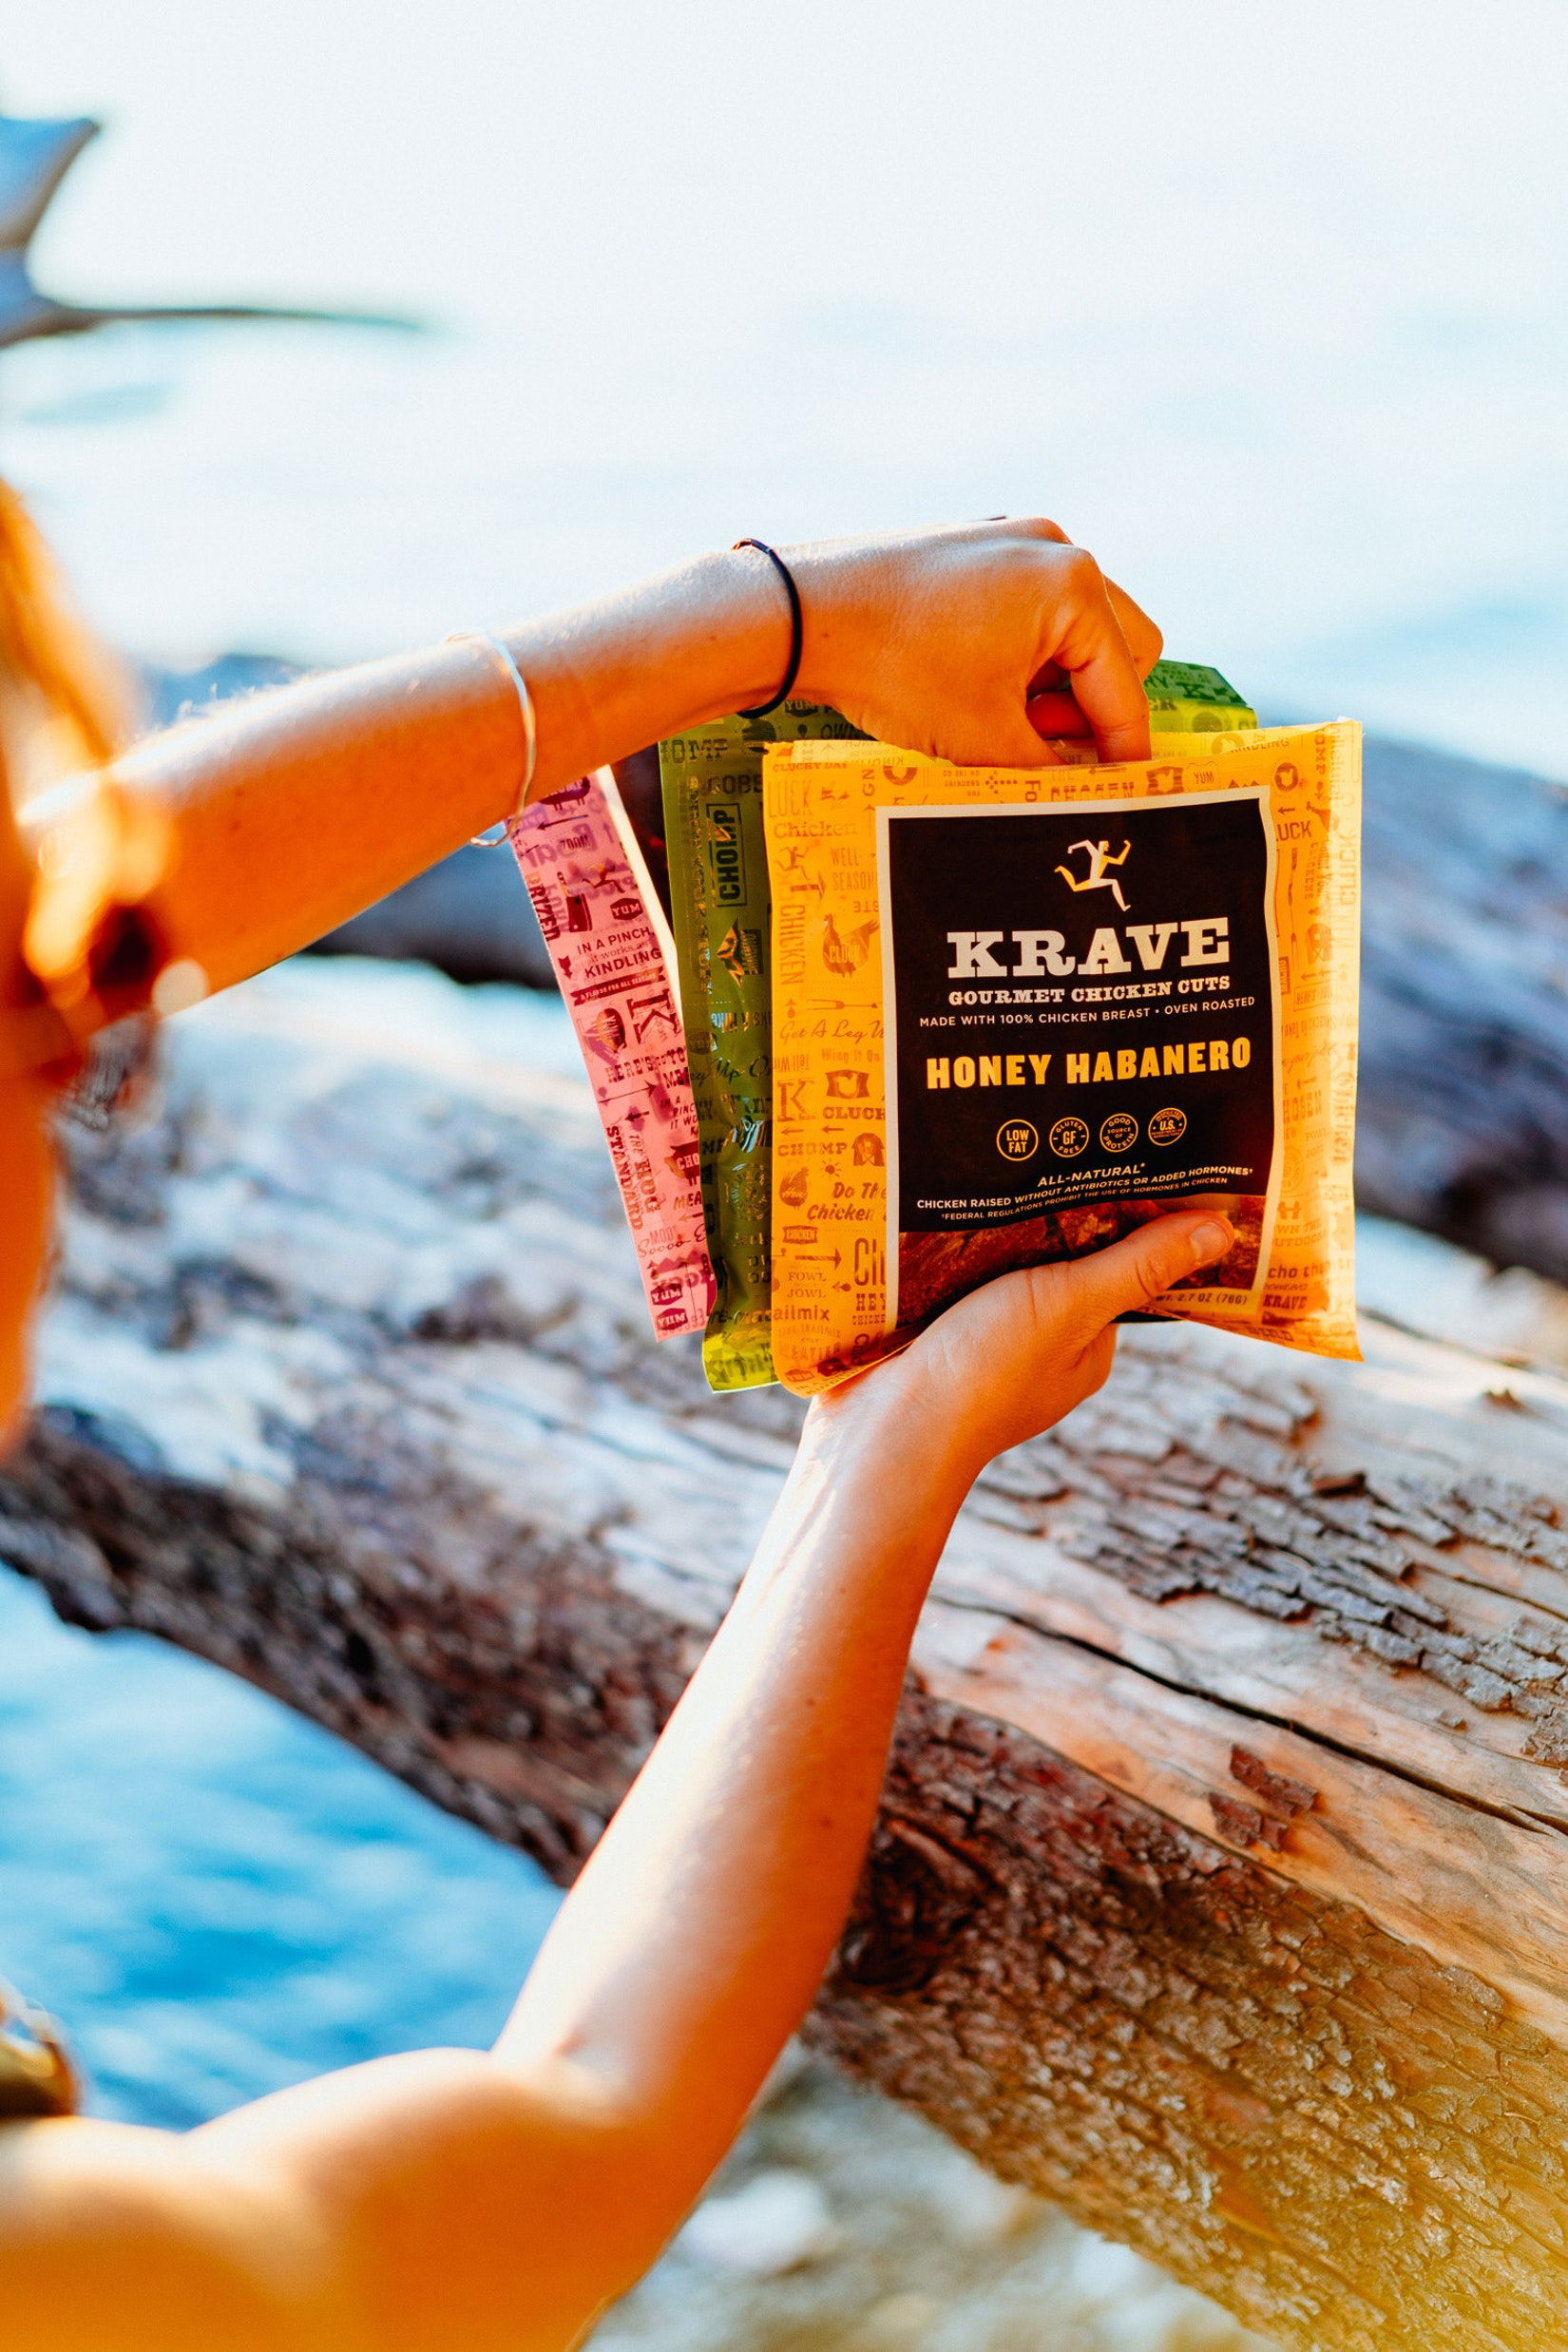 Krave Beef jerky at sunset